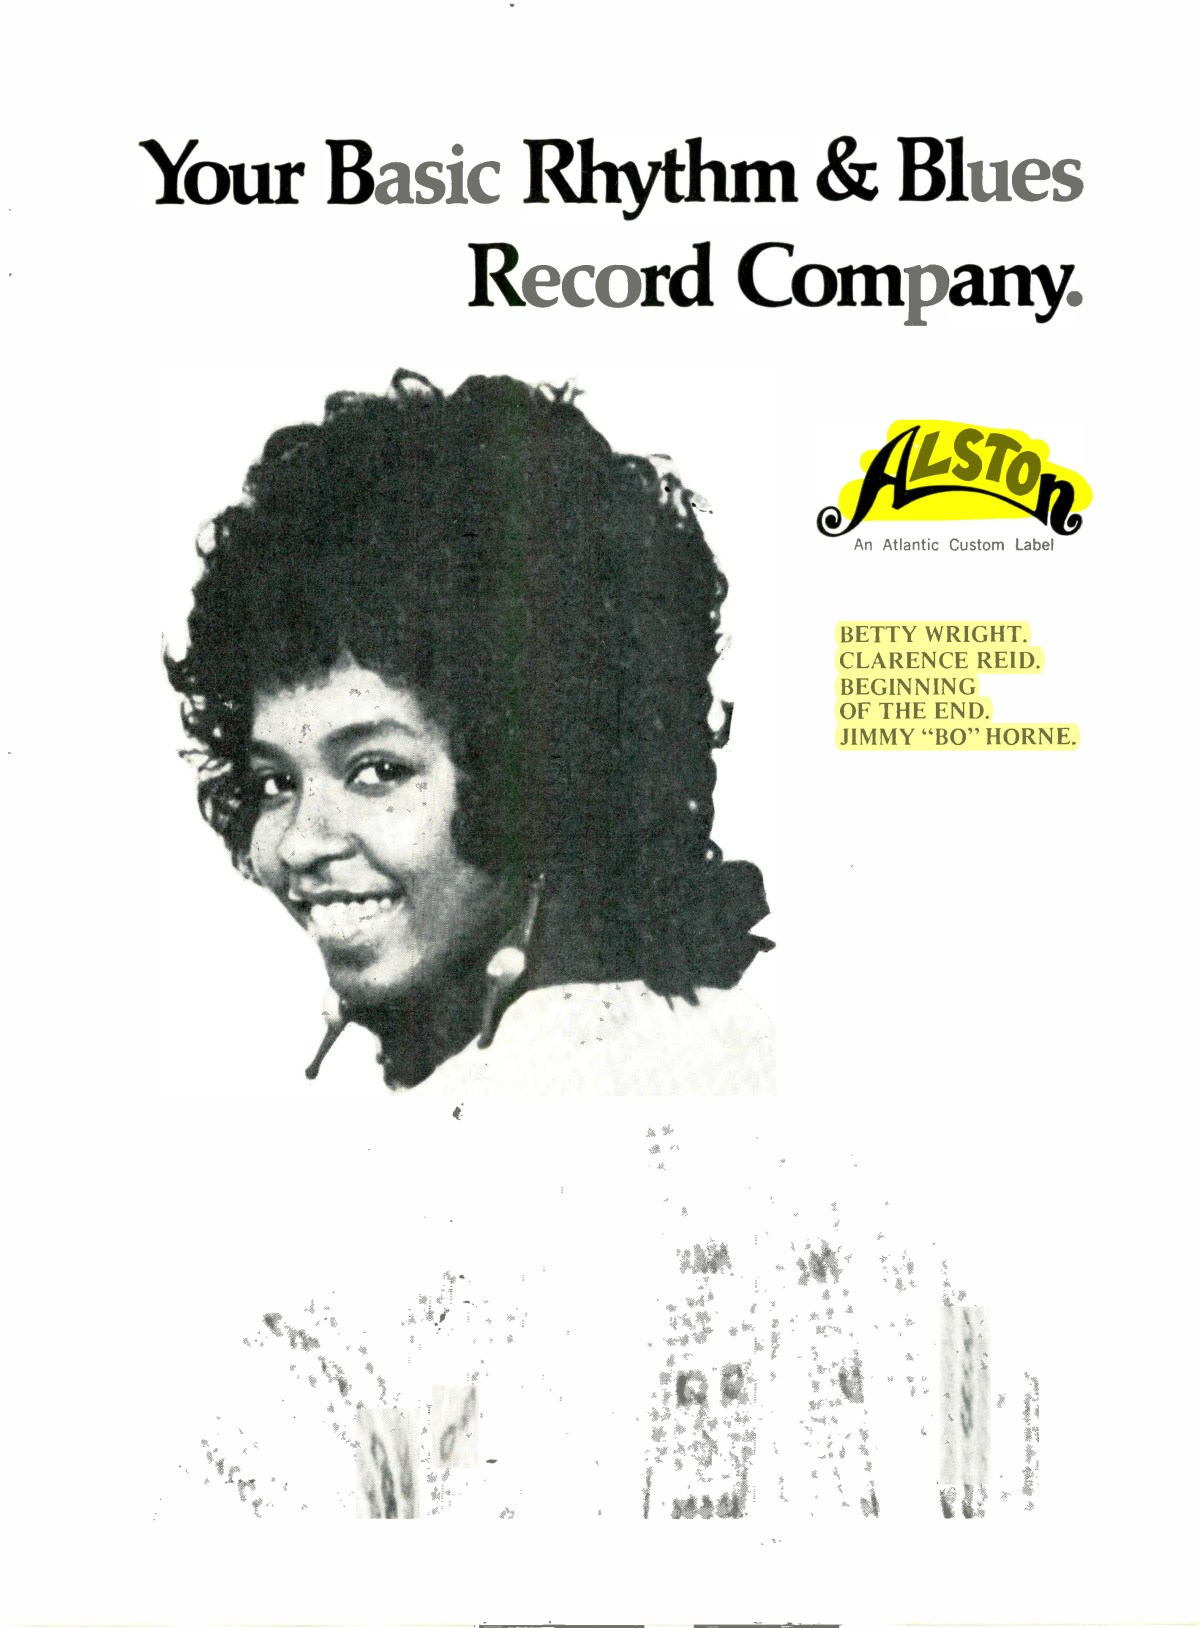 Alston Records Rhythm and Blues Company